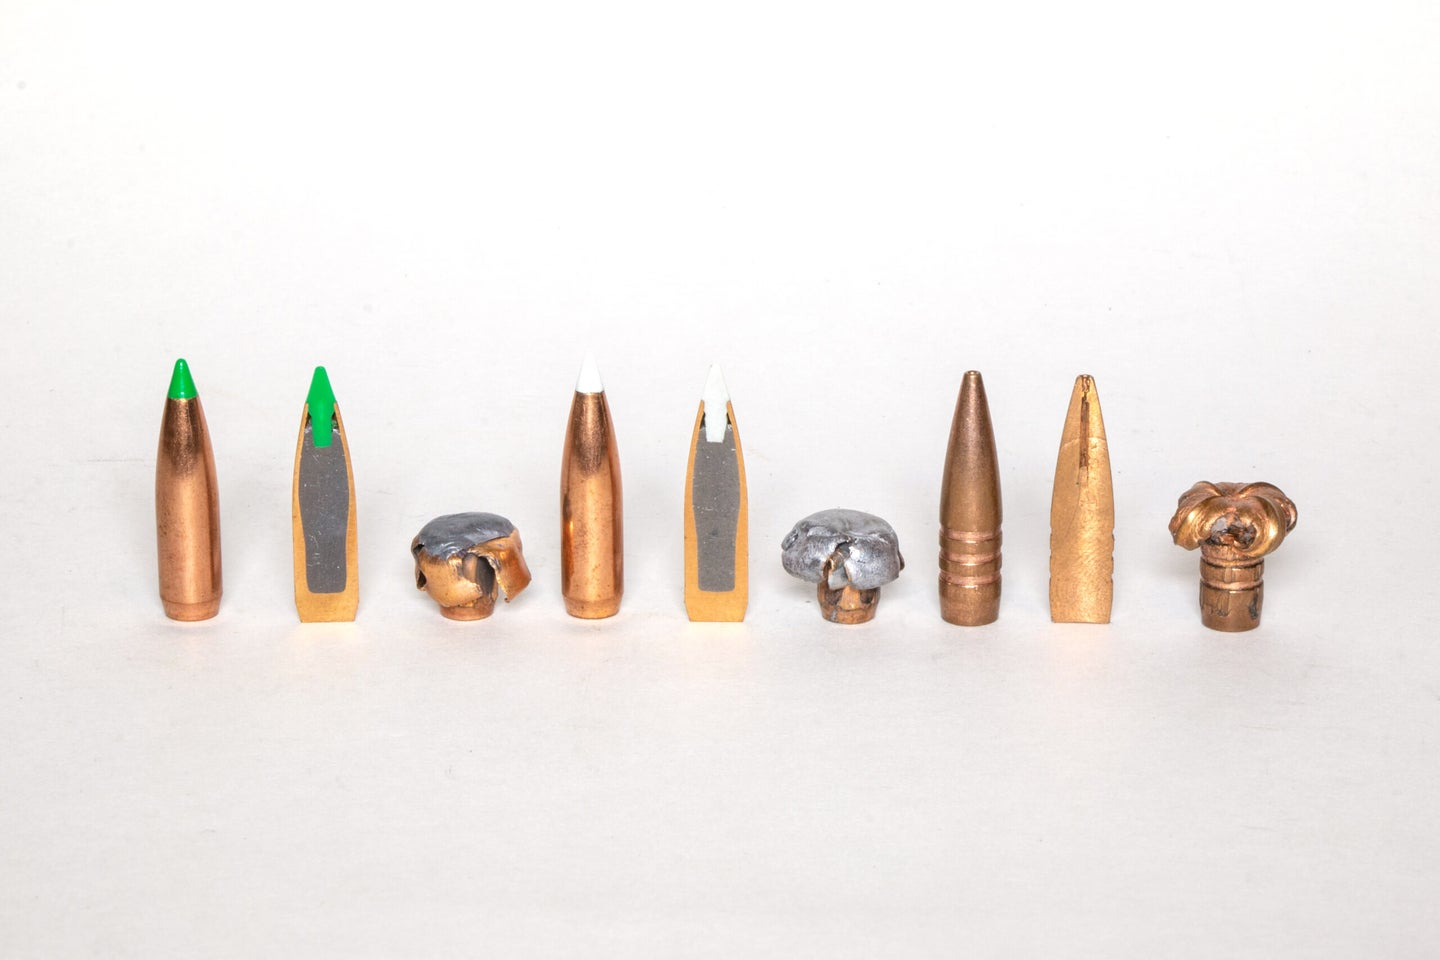 Jacketed, bonded, and all-copper bullets